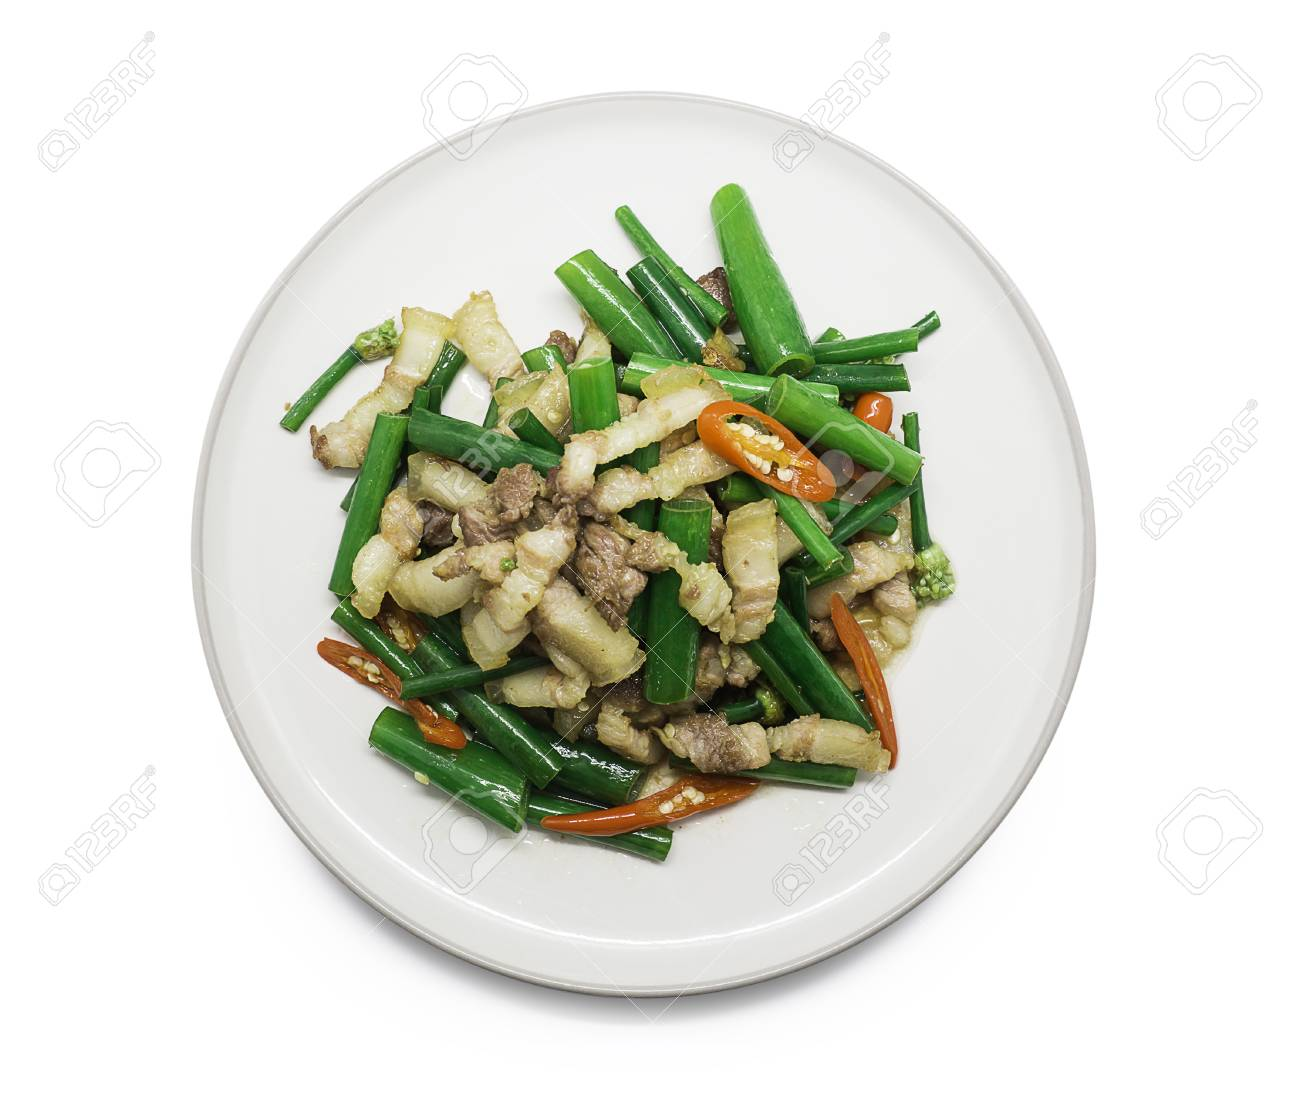 Thai Food Streaky Pork Fried With Spring Onion Flower And Chili